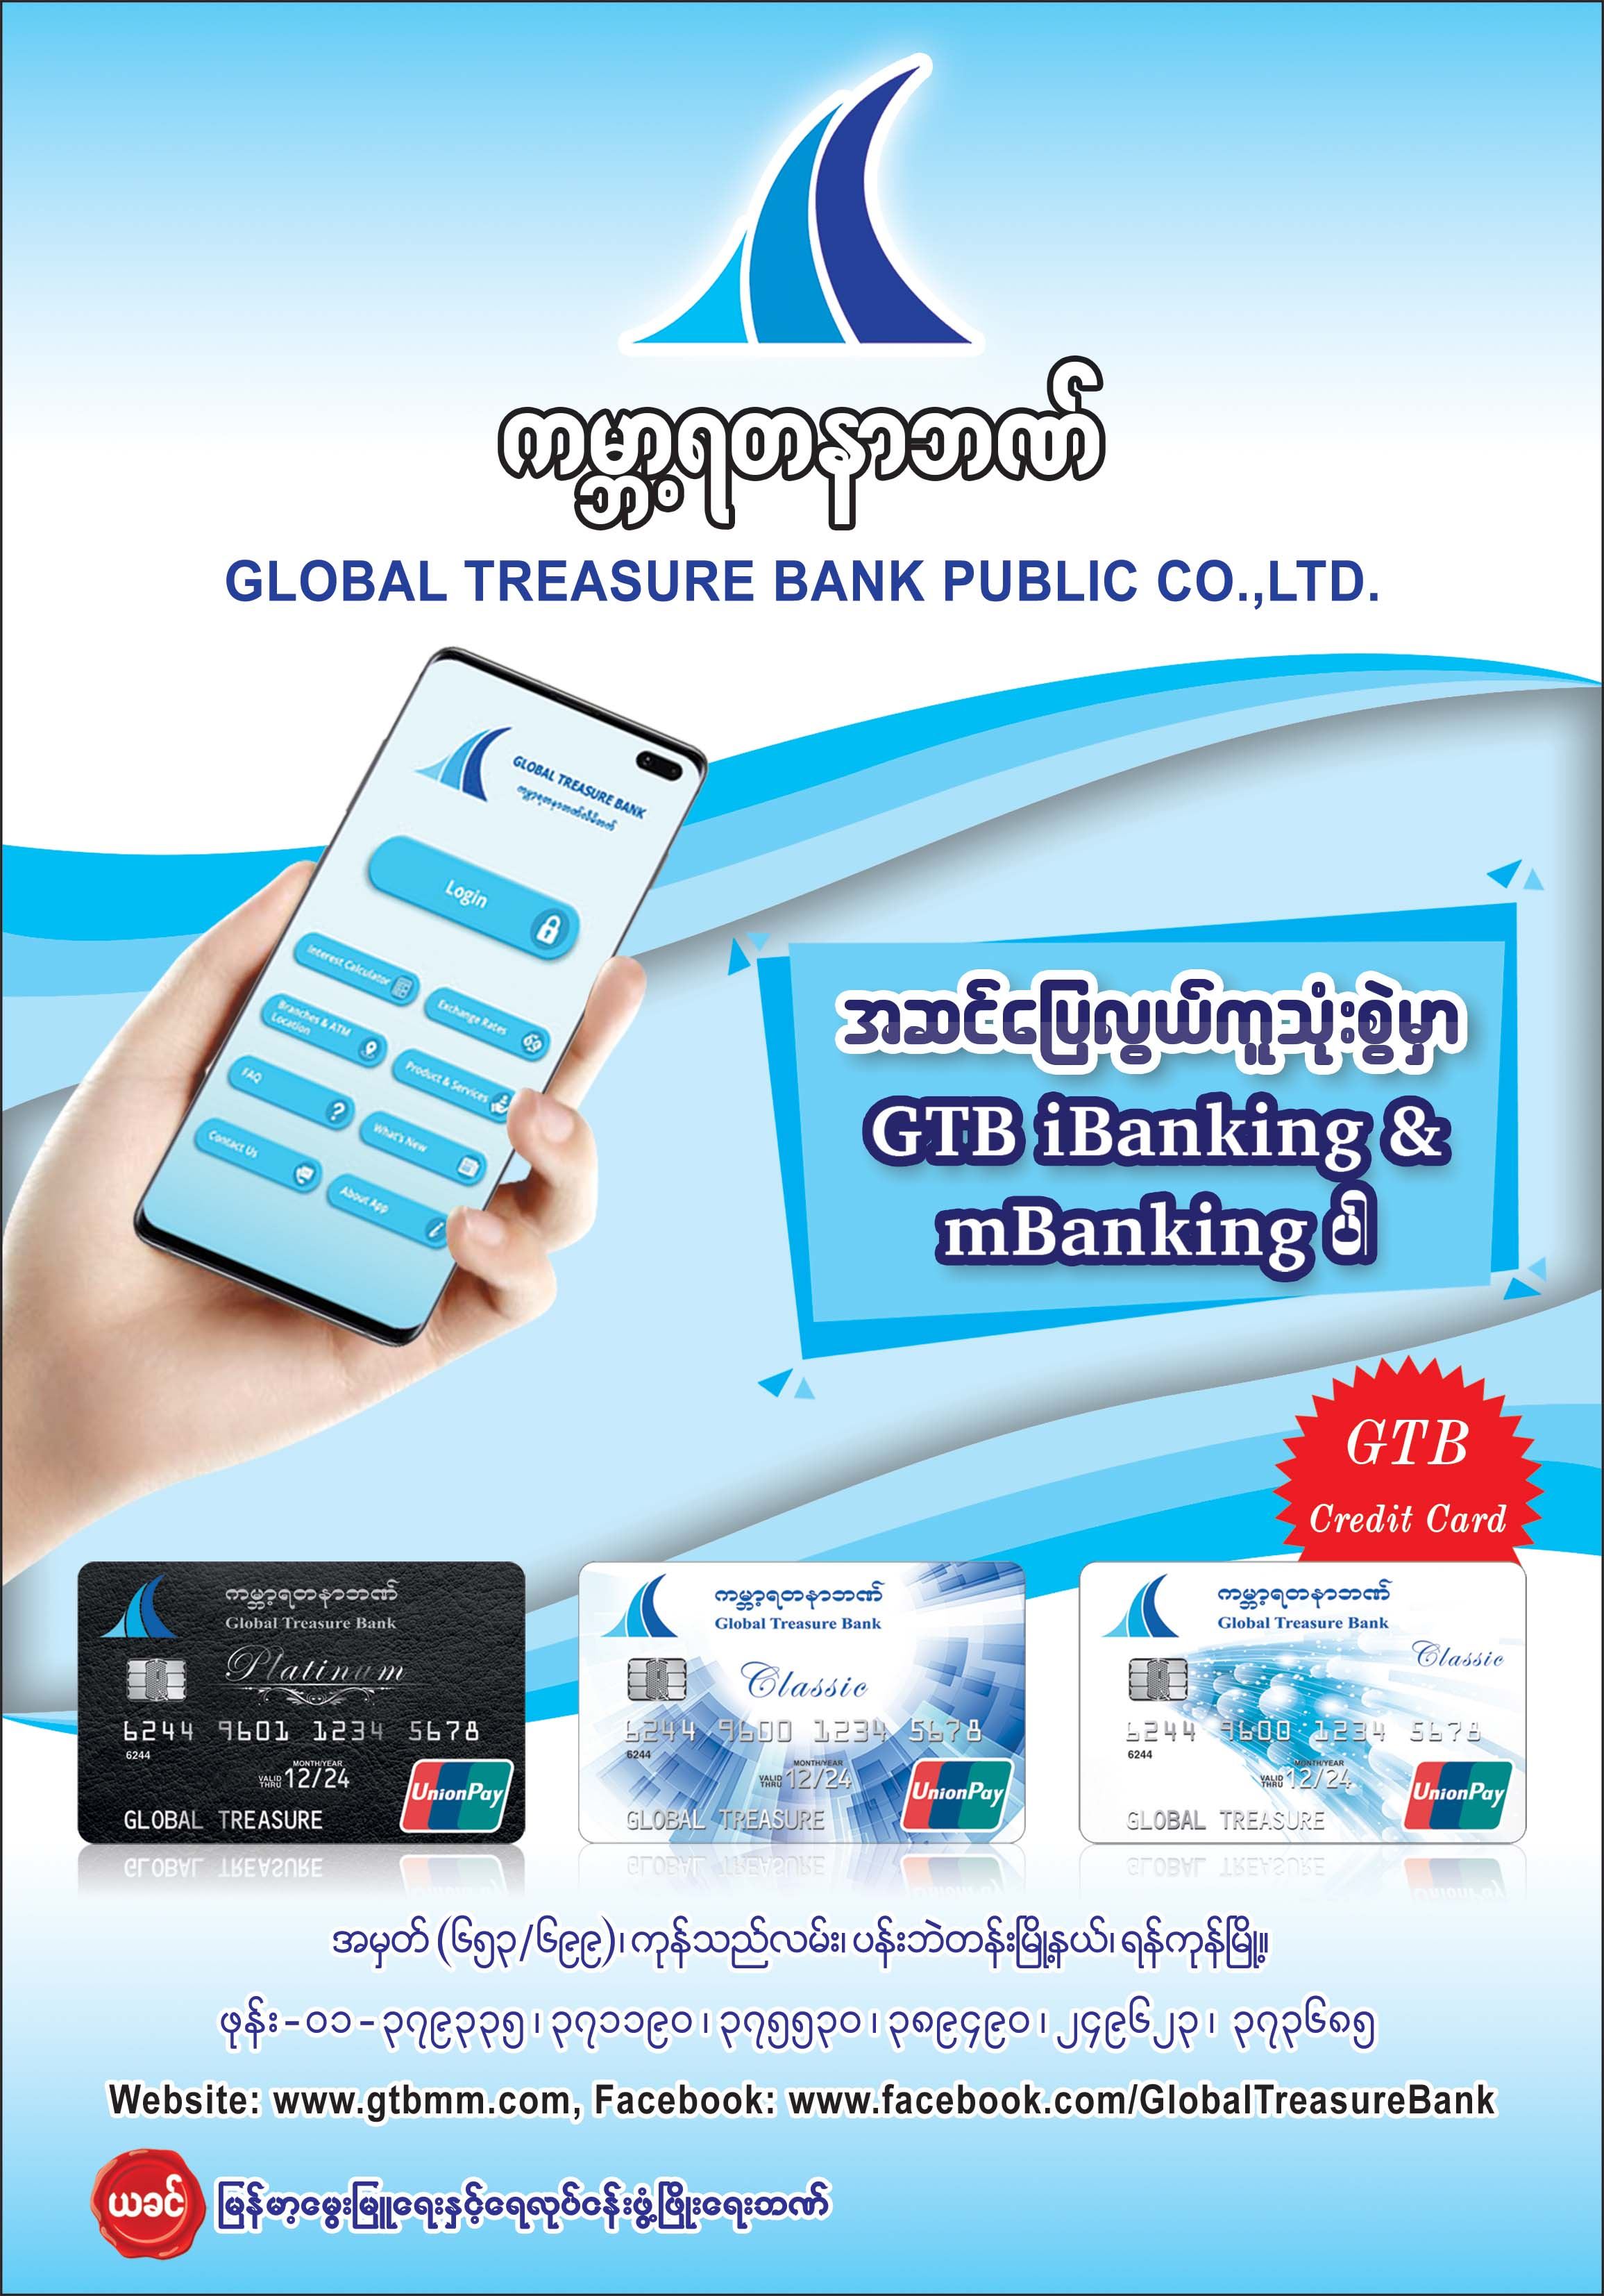 Global Treasure Bank